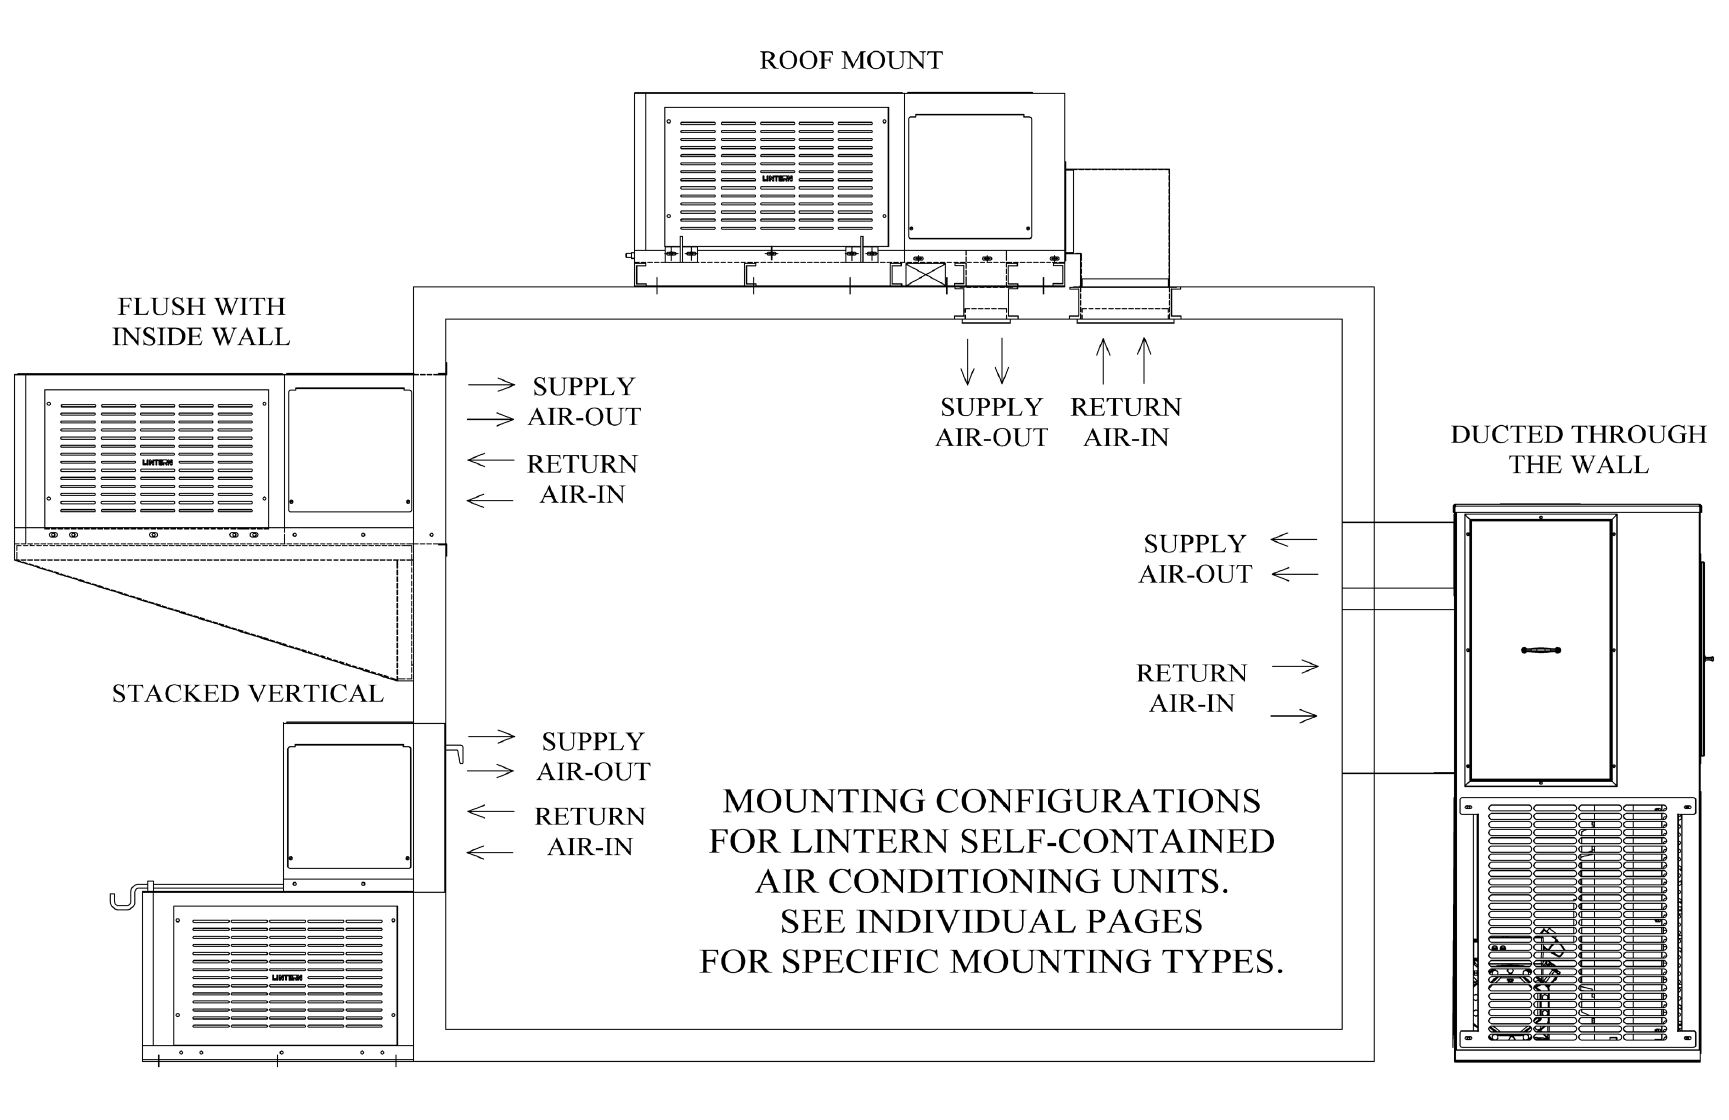 Self-contained Mounting Configuration